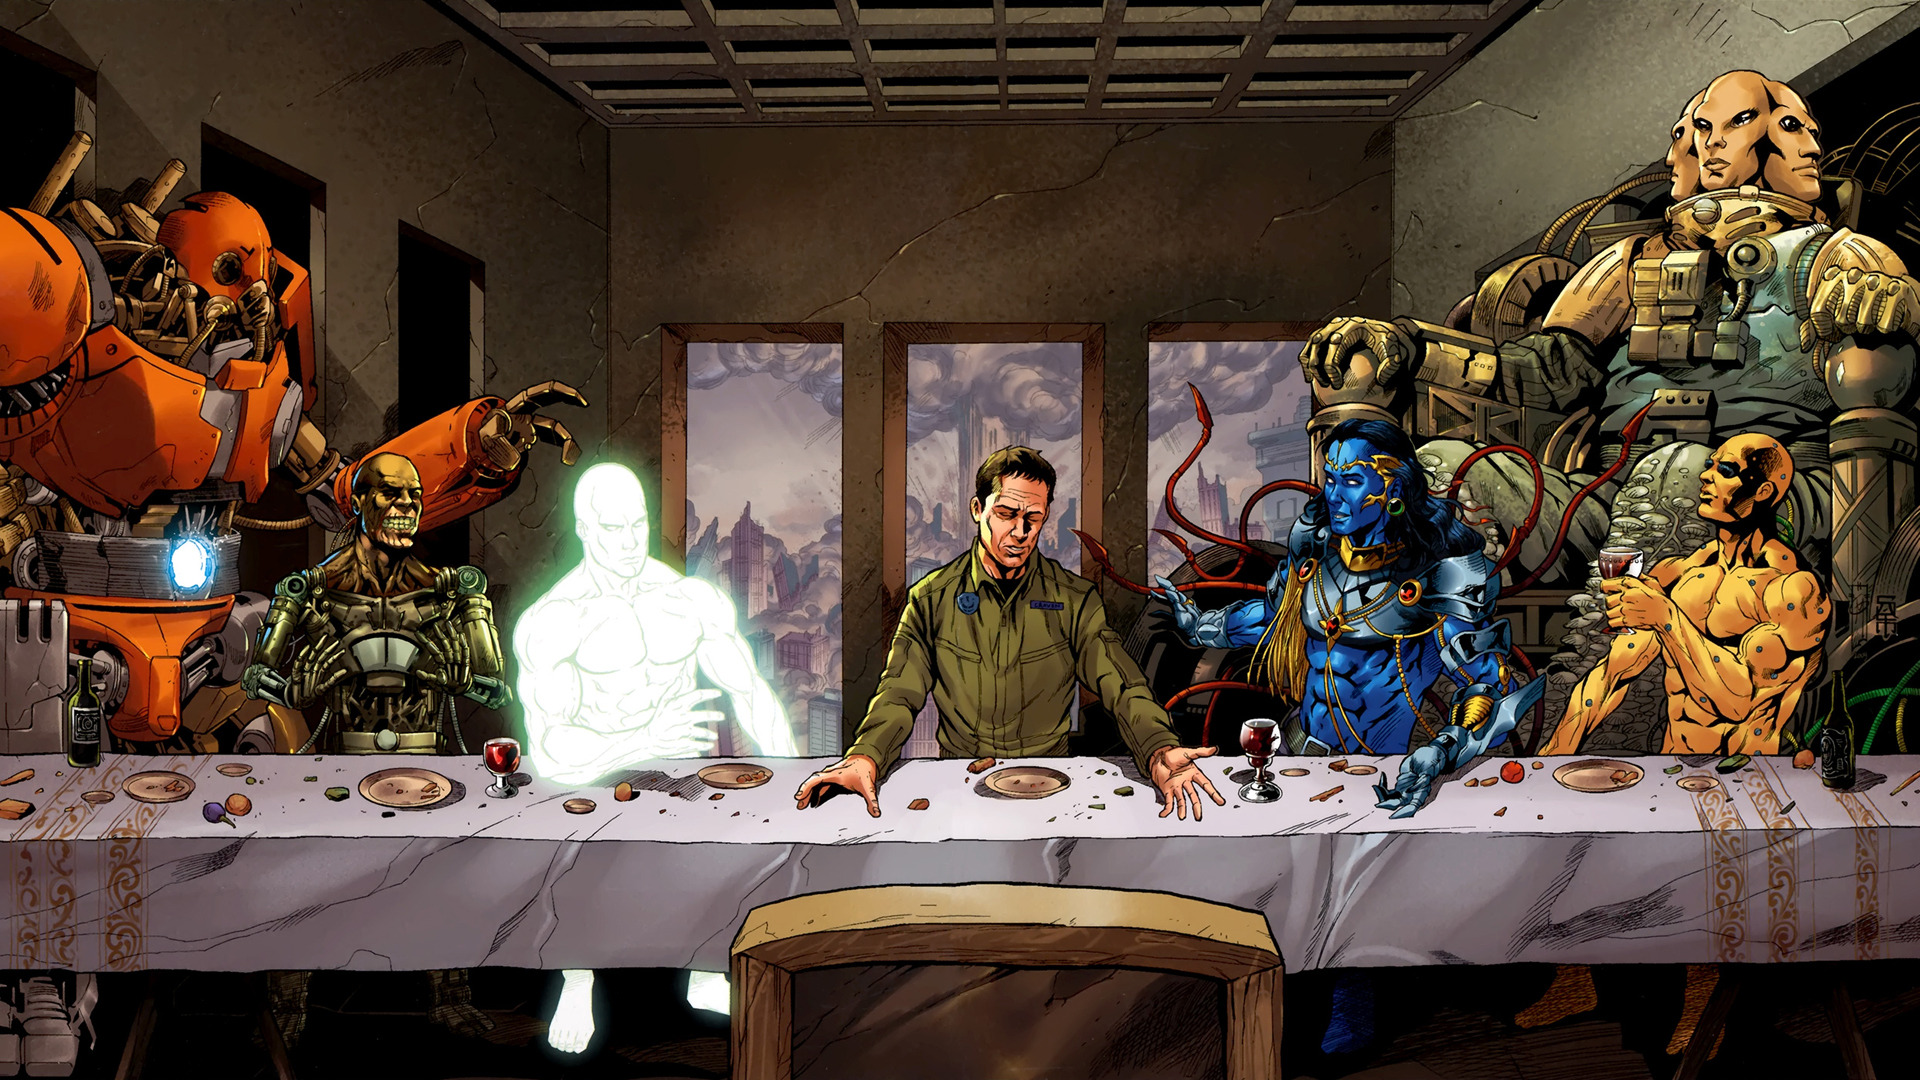 Supergod Last Supper wallpaper 19264 1920x1080